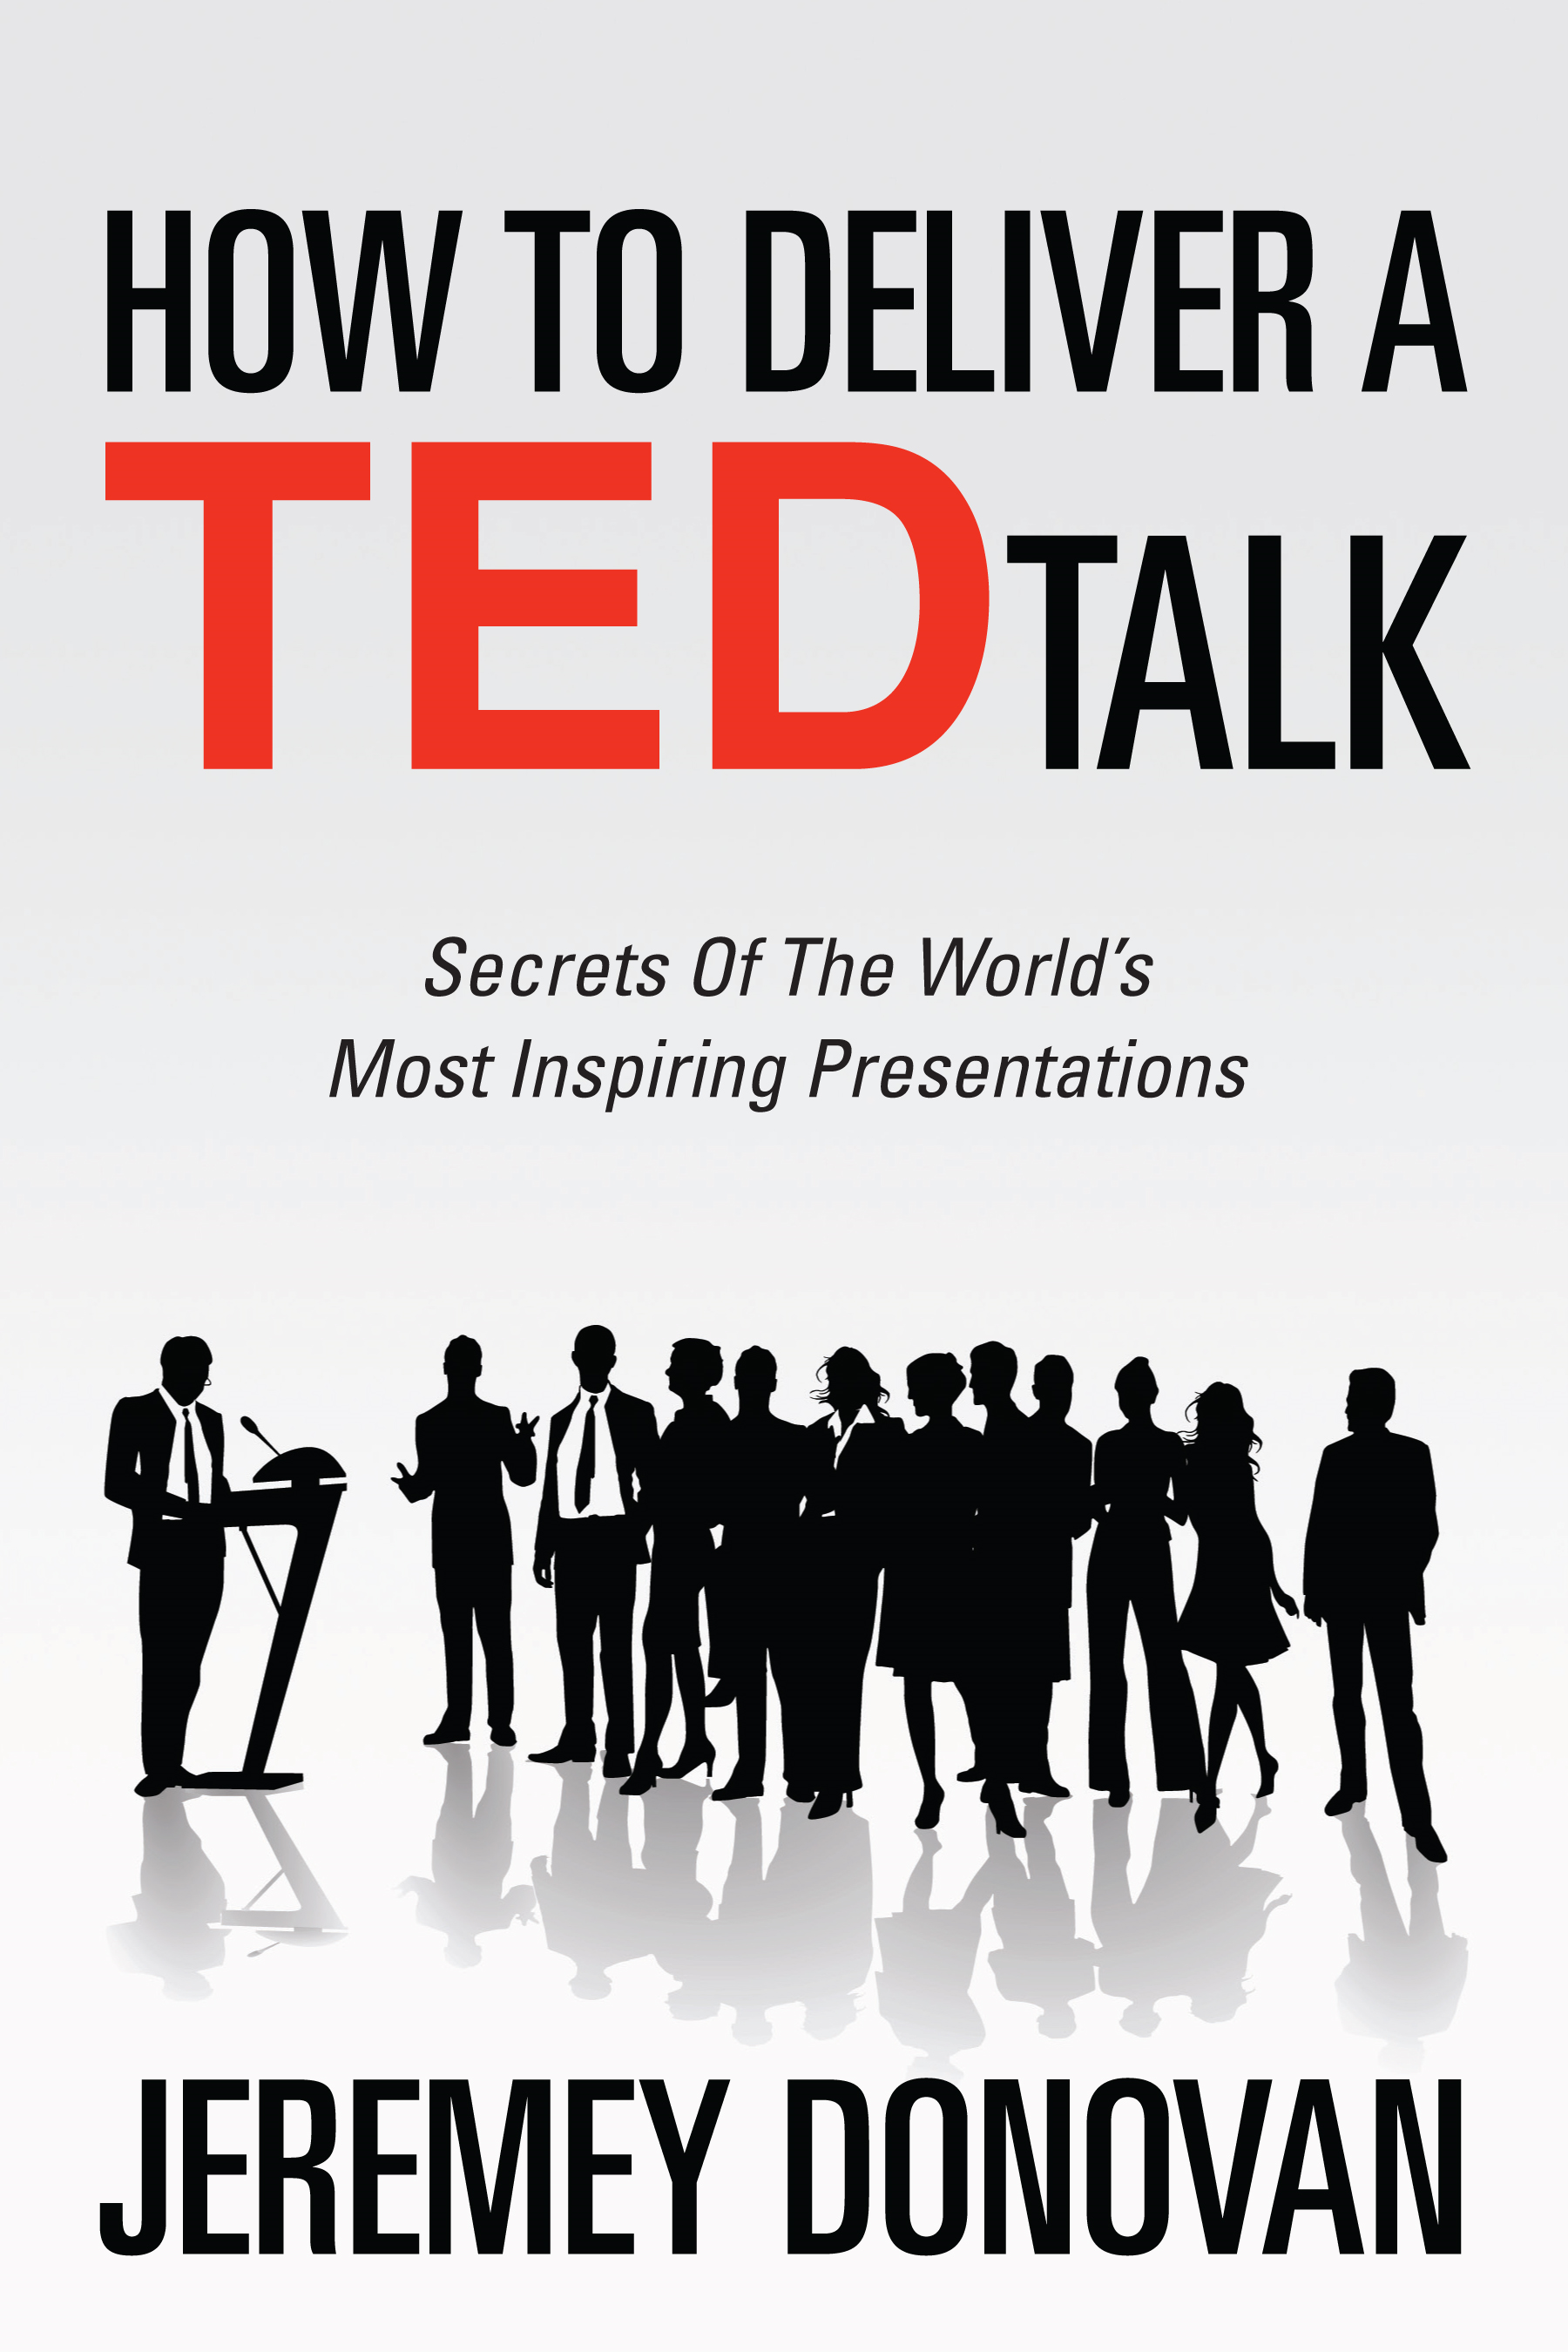 How to Deliver a TED Talk By: Jeremey Donovan